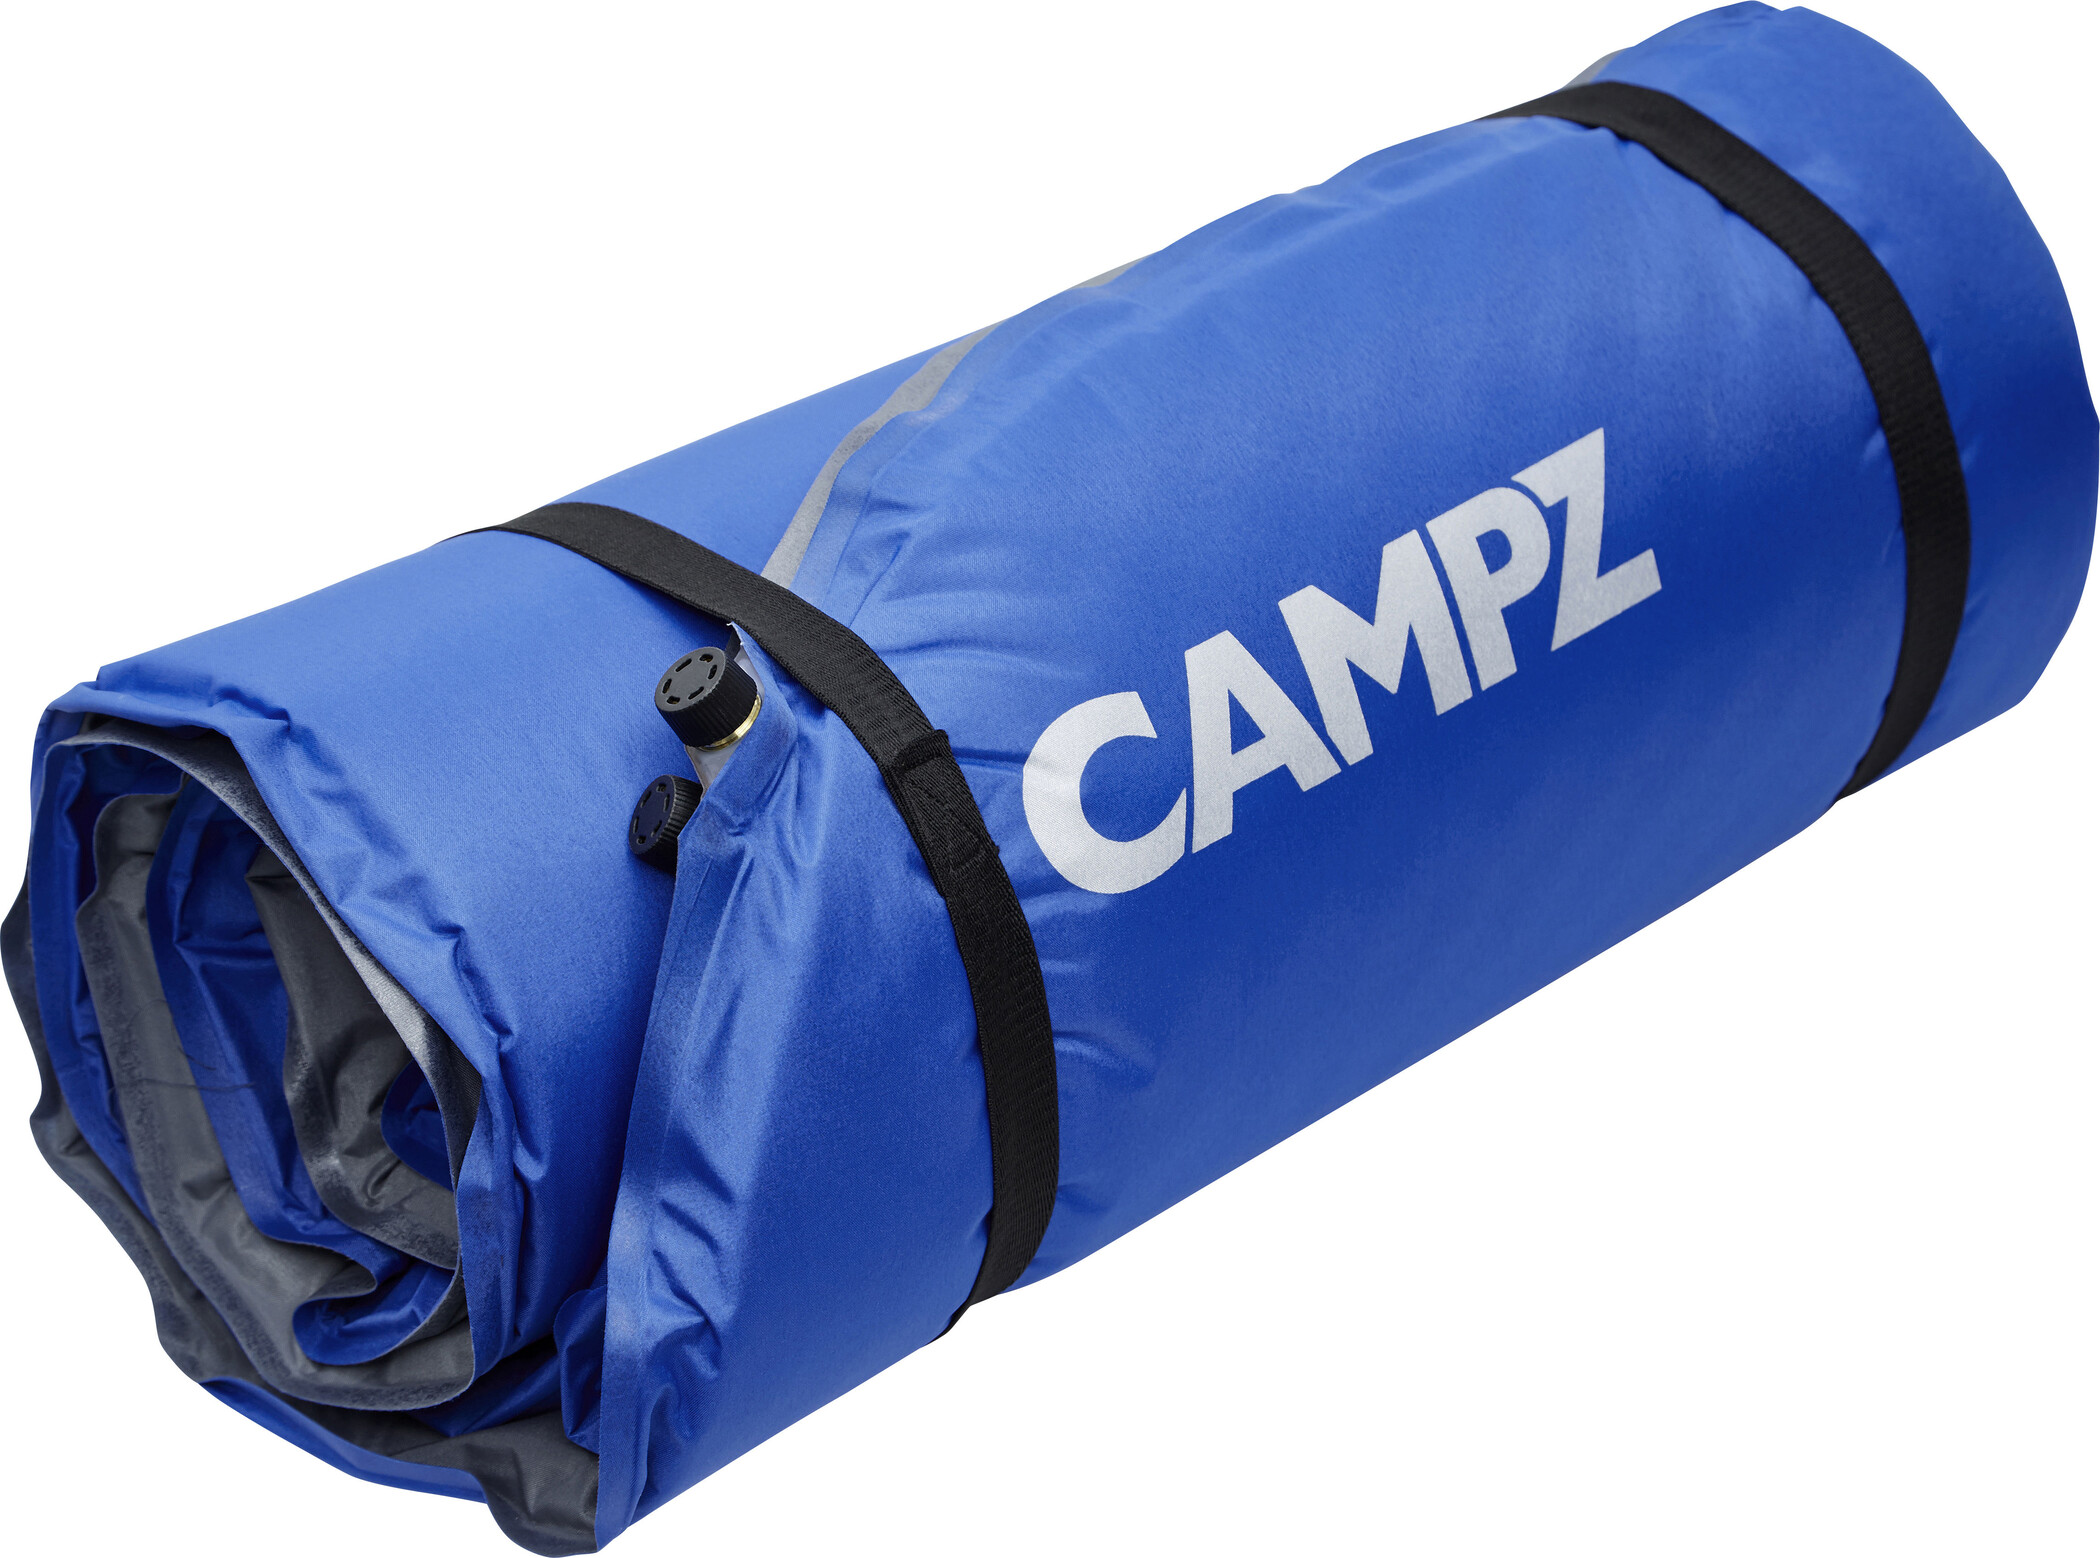 CAMPZ Double Comfort Liggeunderlag L, blue (2019) | Misc. Transportation and Storage